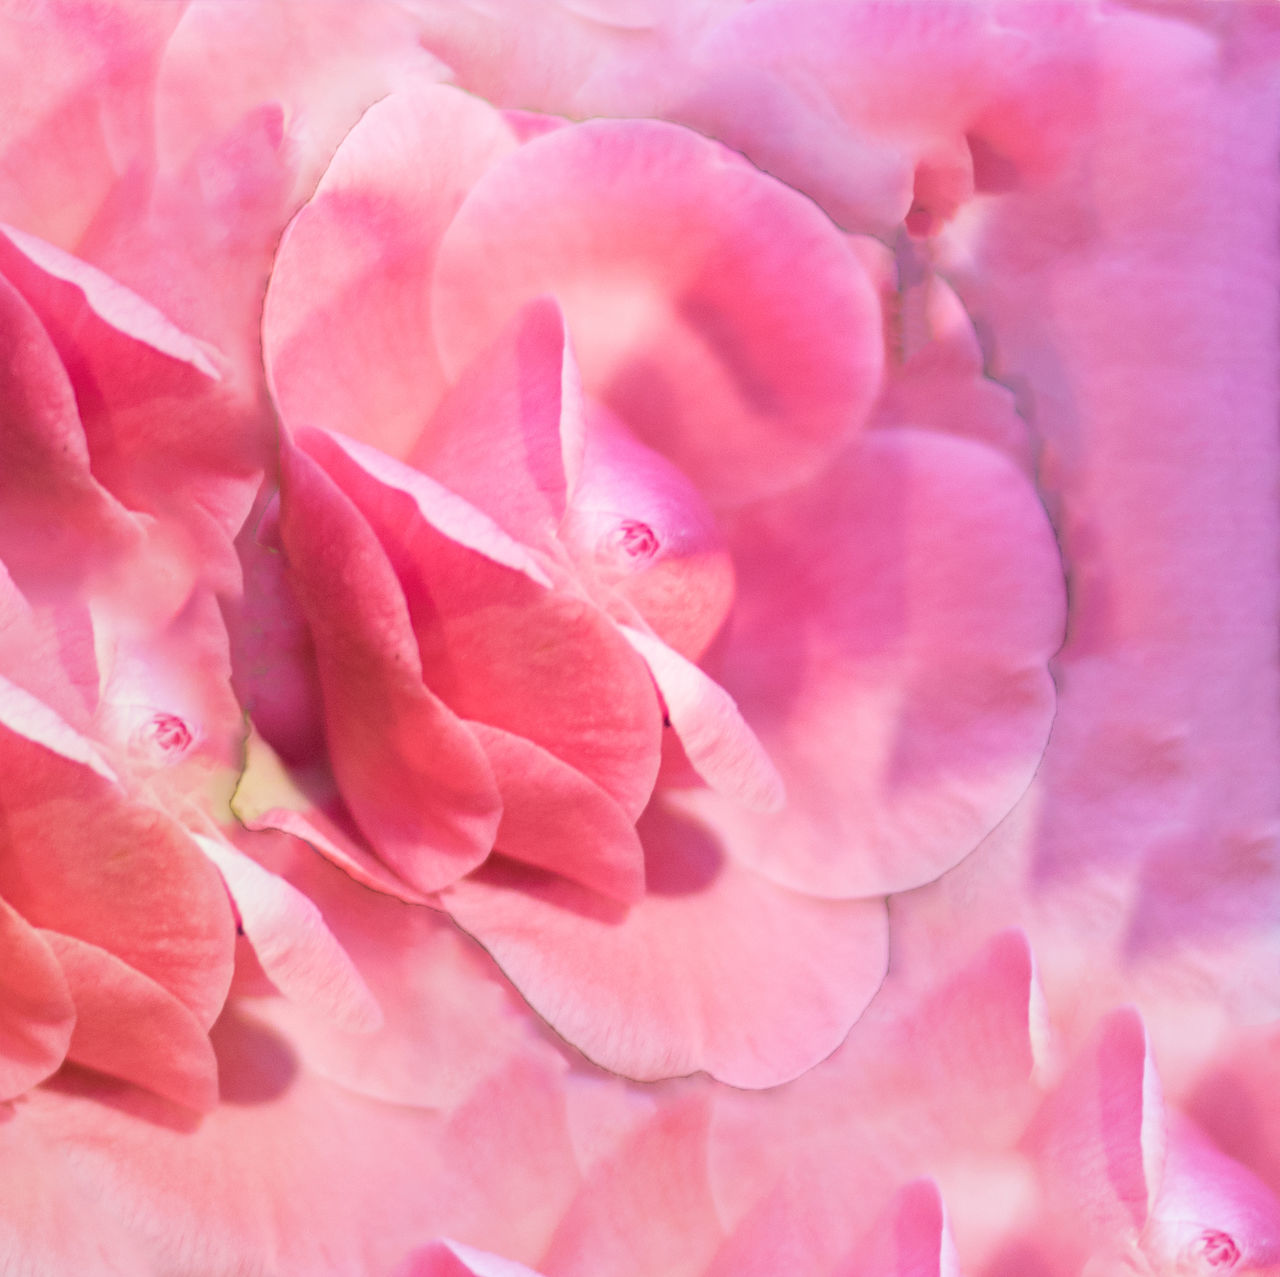 flower, petal, pink color, backgrounds, full frame, beauty in nature, nature, flower head, no people, rose - flower, fragility, close-up, plant, freshness, growth, outdoors, day